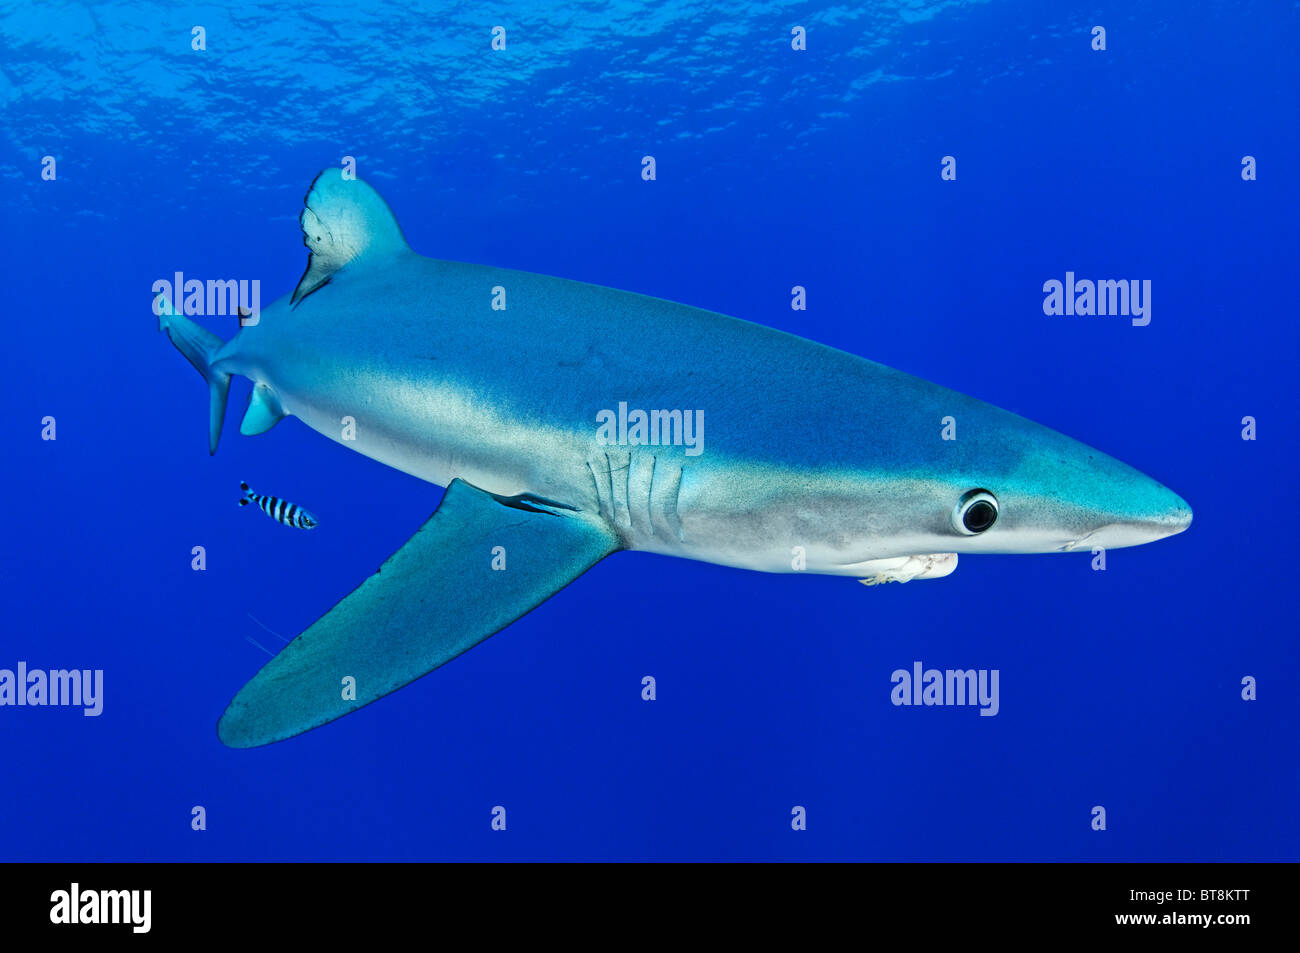 Blue Shark and pilotfisch, Prionace glauca, Naucrates ductor, Azores, Portugal, Atlantic Ocean Stock Photo